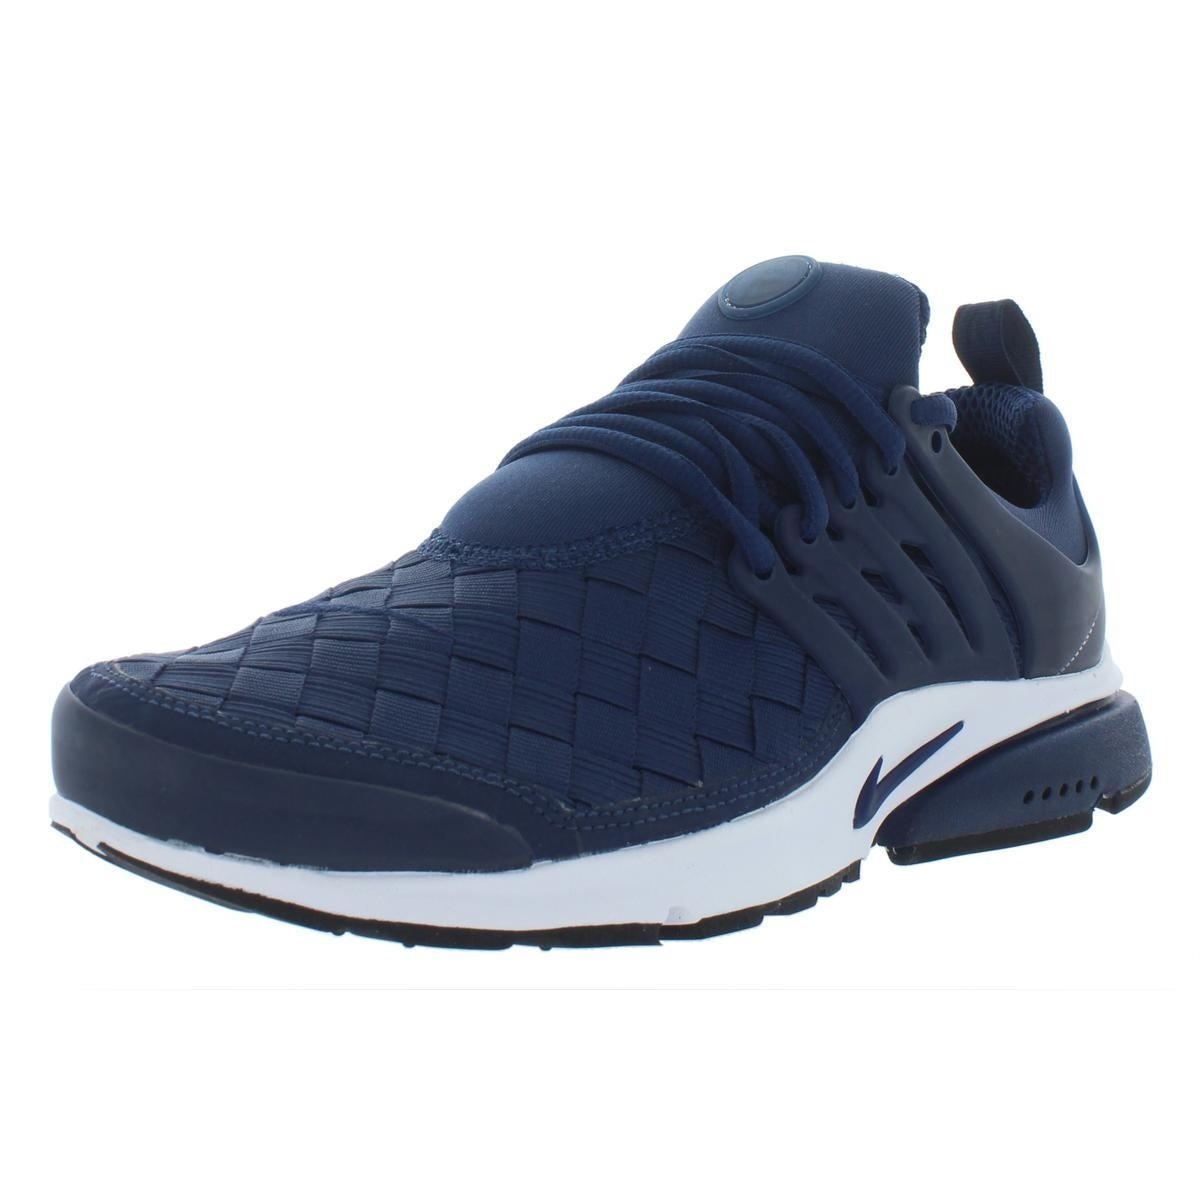 30f1d2f878520 Nike Mens Nike Air Presto Running Shoes Padded Insole Workout - 8 Medium (D)